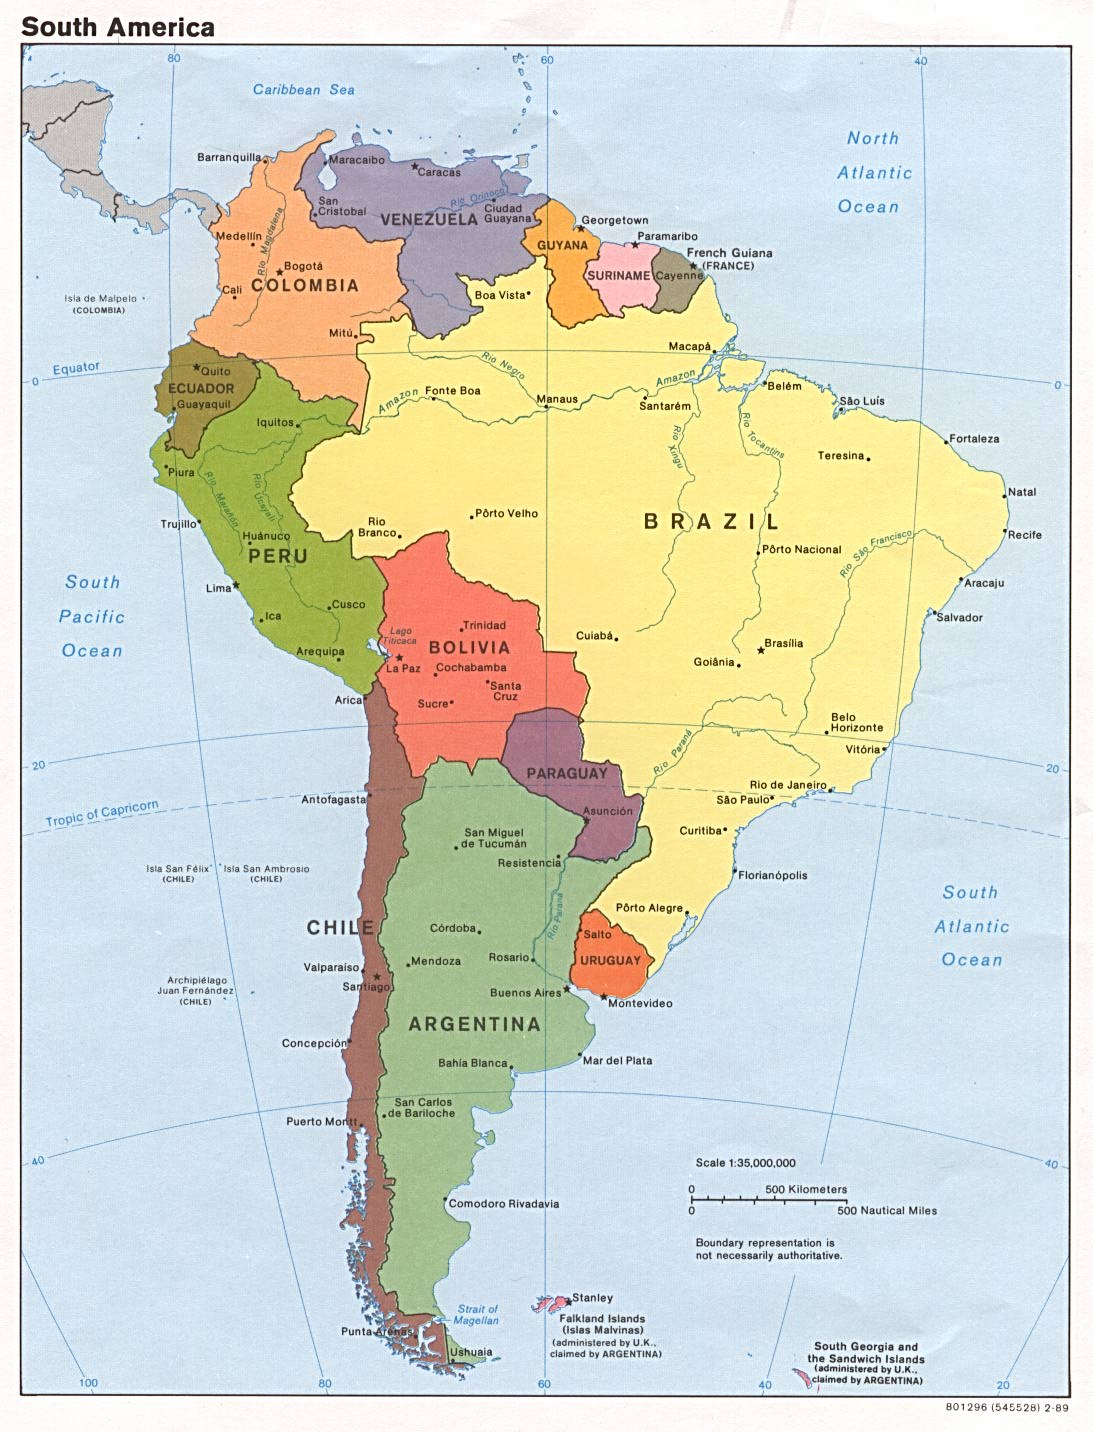 1Up Travel Maps of South America Continent South America Political Map 1